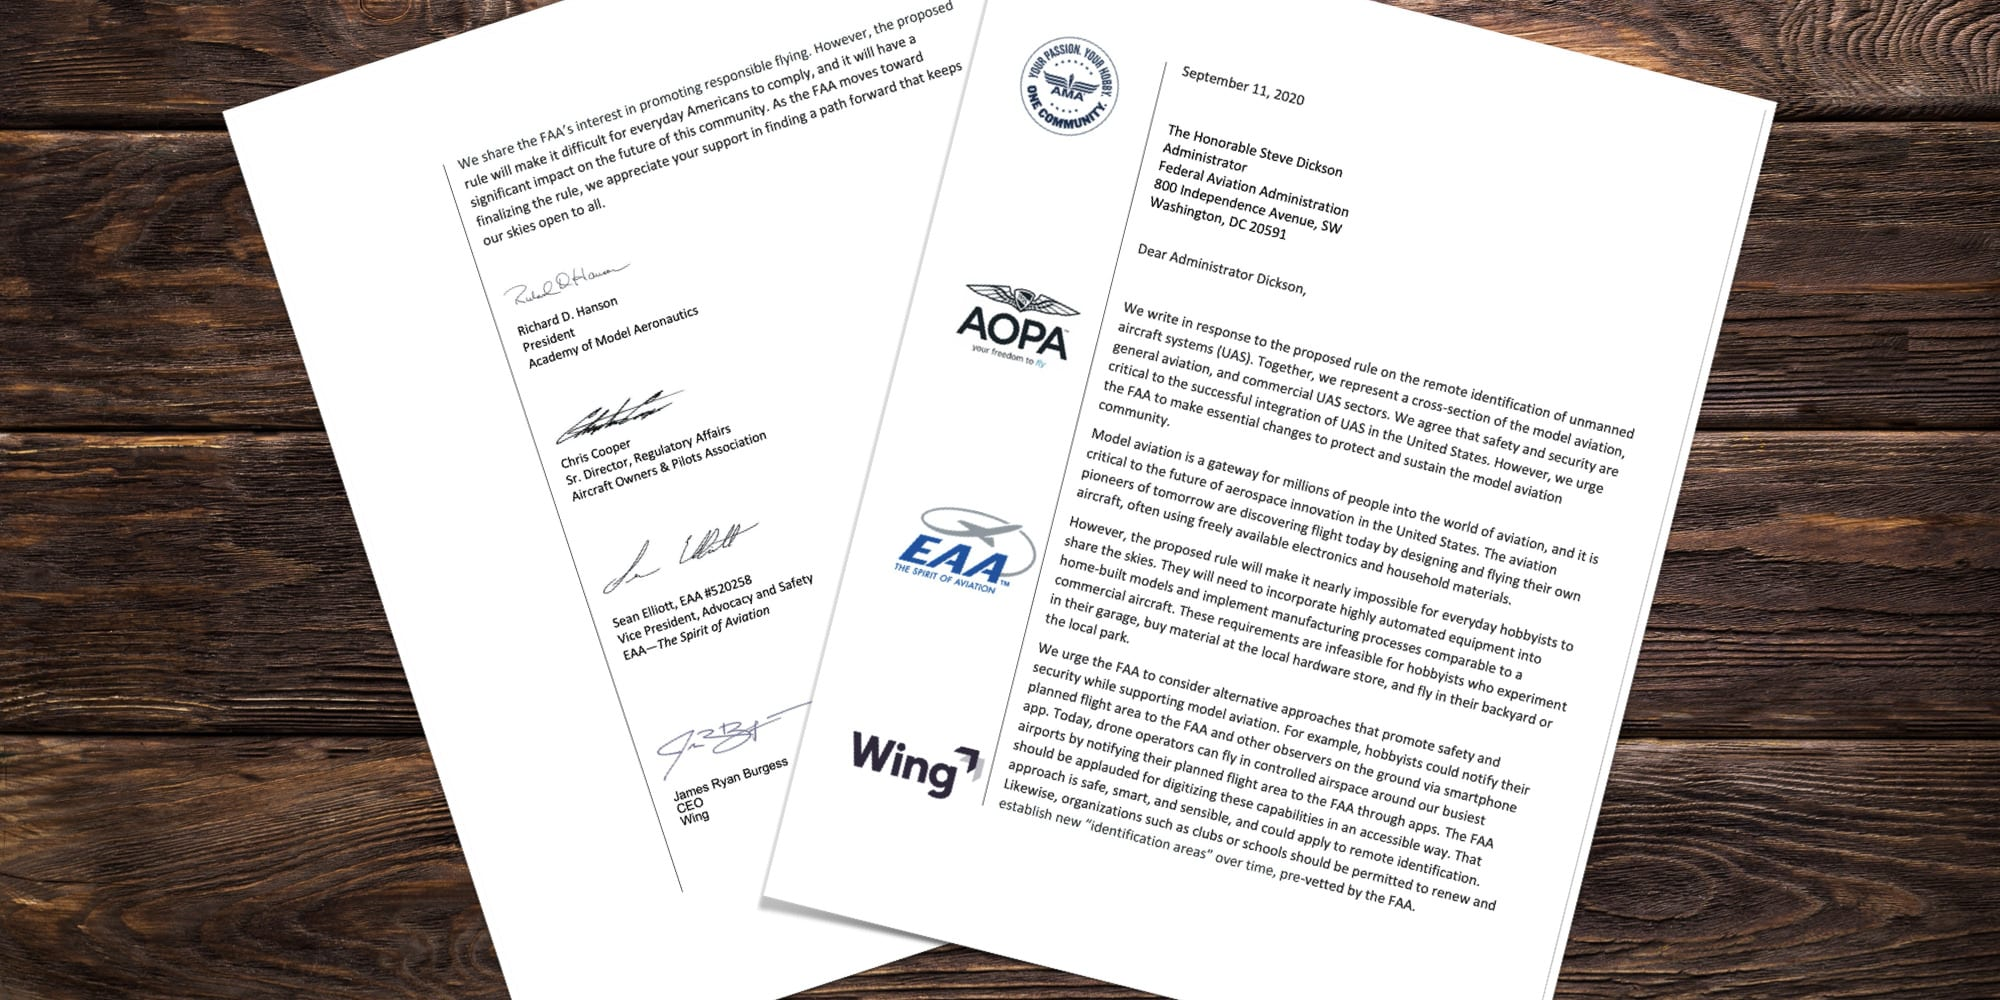 AMA, AOPA, EAA, and Wing send letter to FAA to change Remote ID